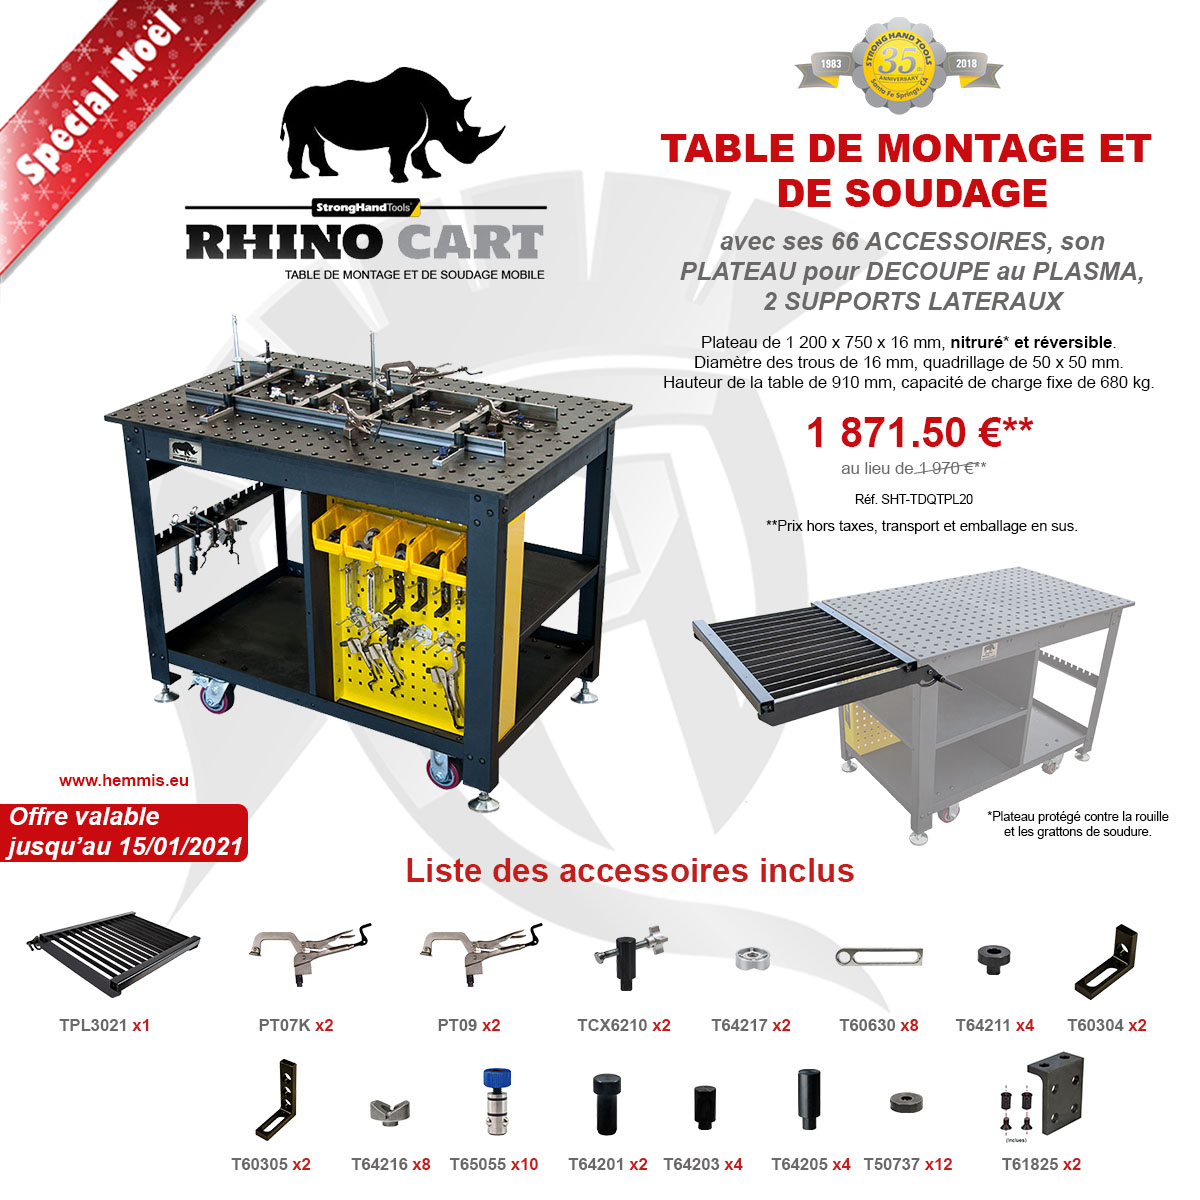 promotion Rhino Cart all package Noël 2020